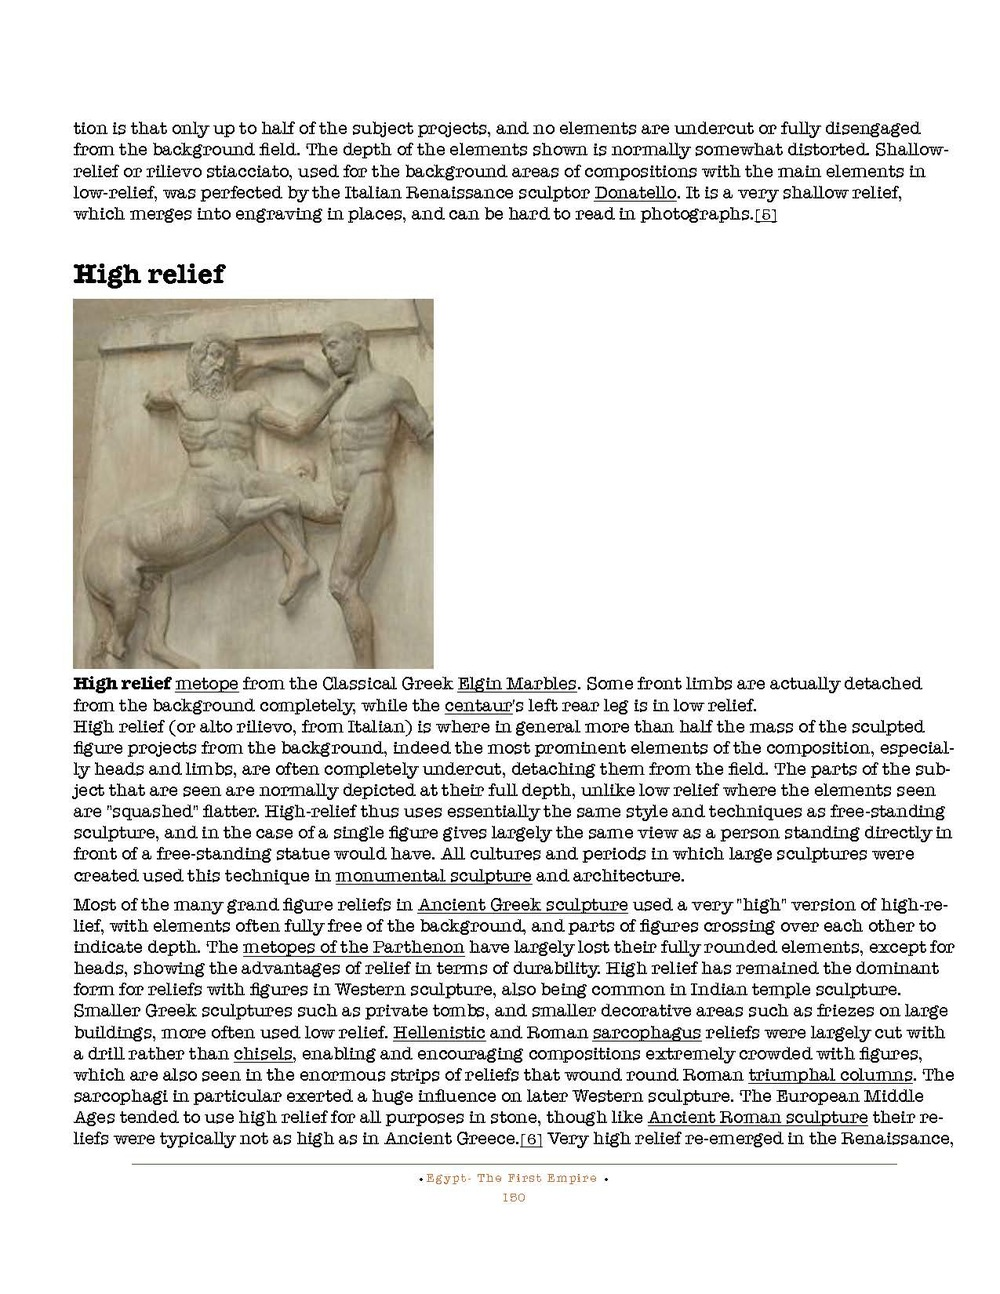 HOCE- Egypt  (First Empire) Notes_Page_150.jpg